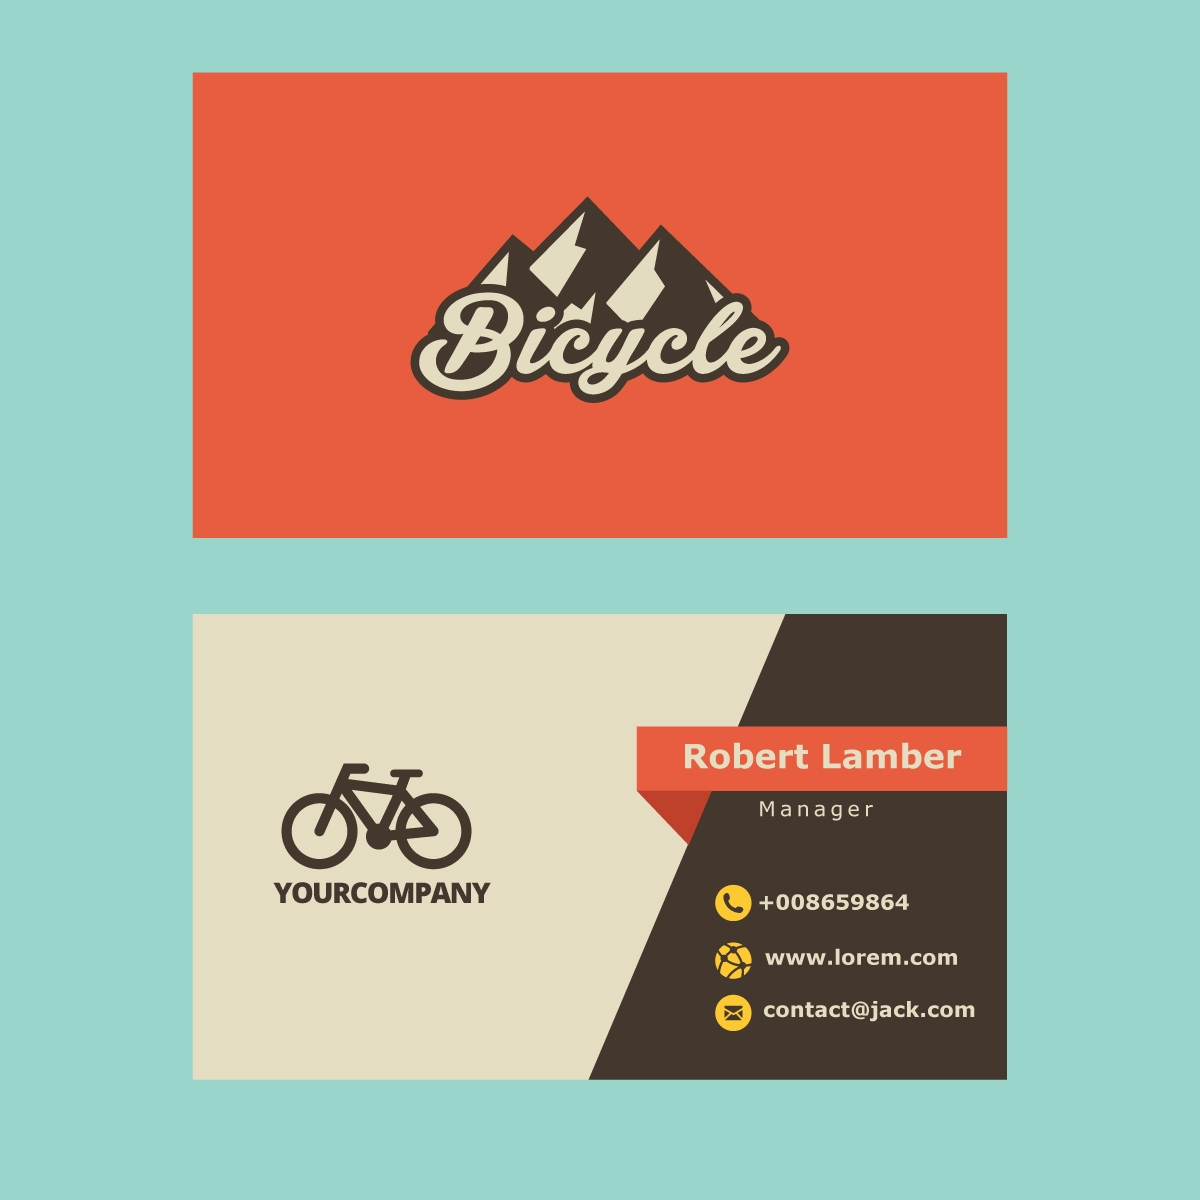 Retro Business Card Logo